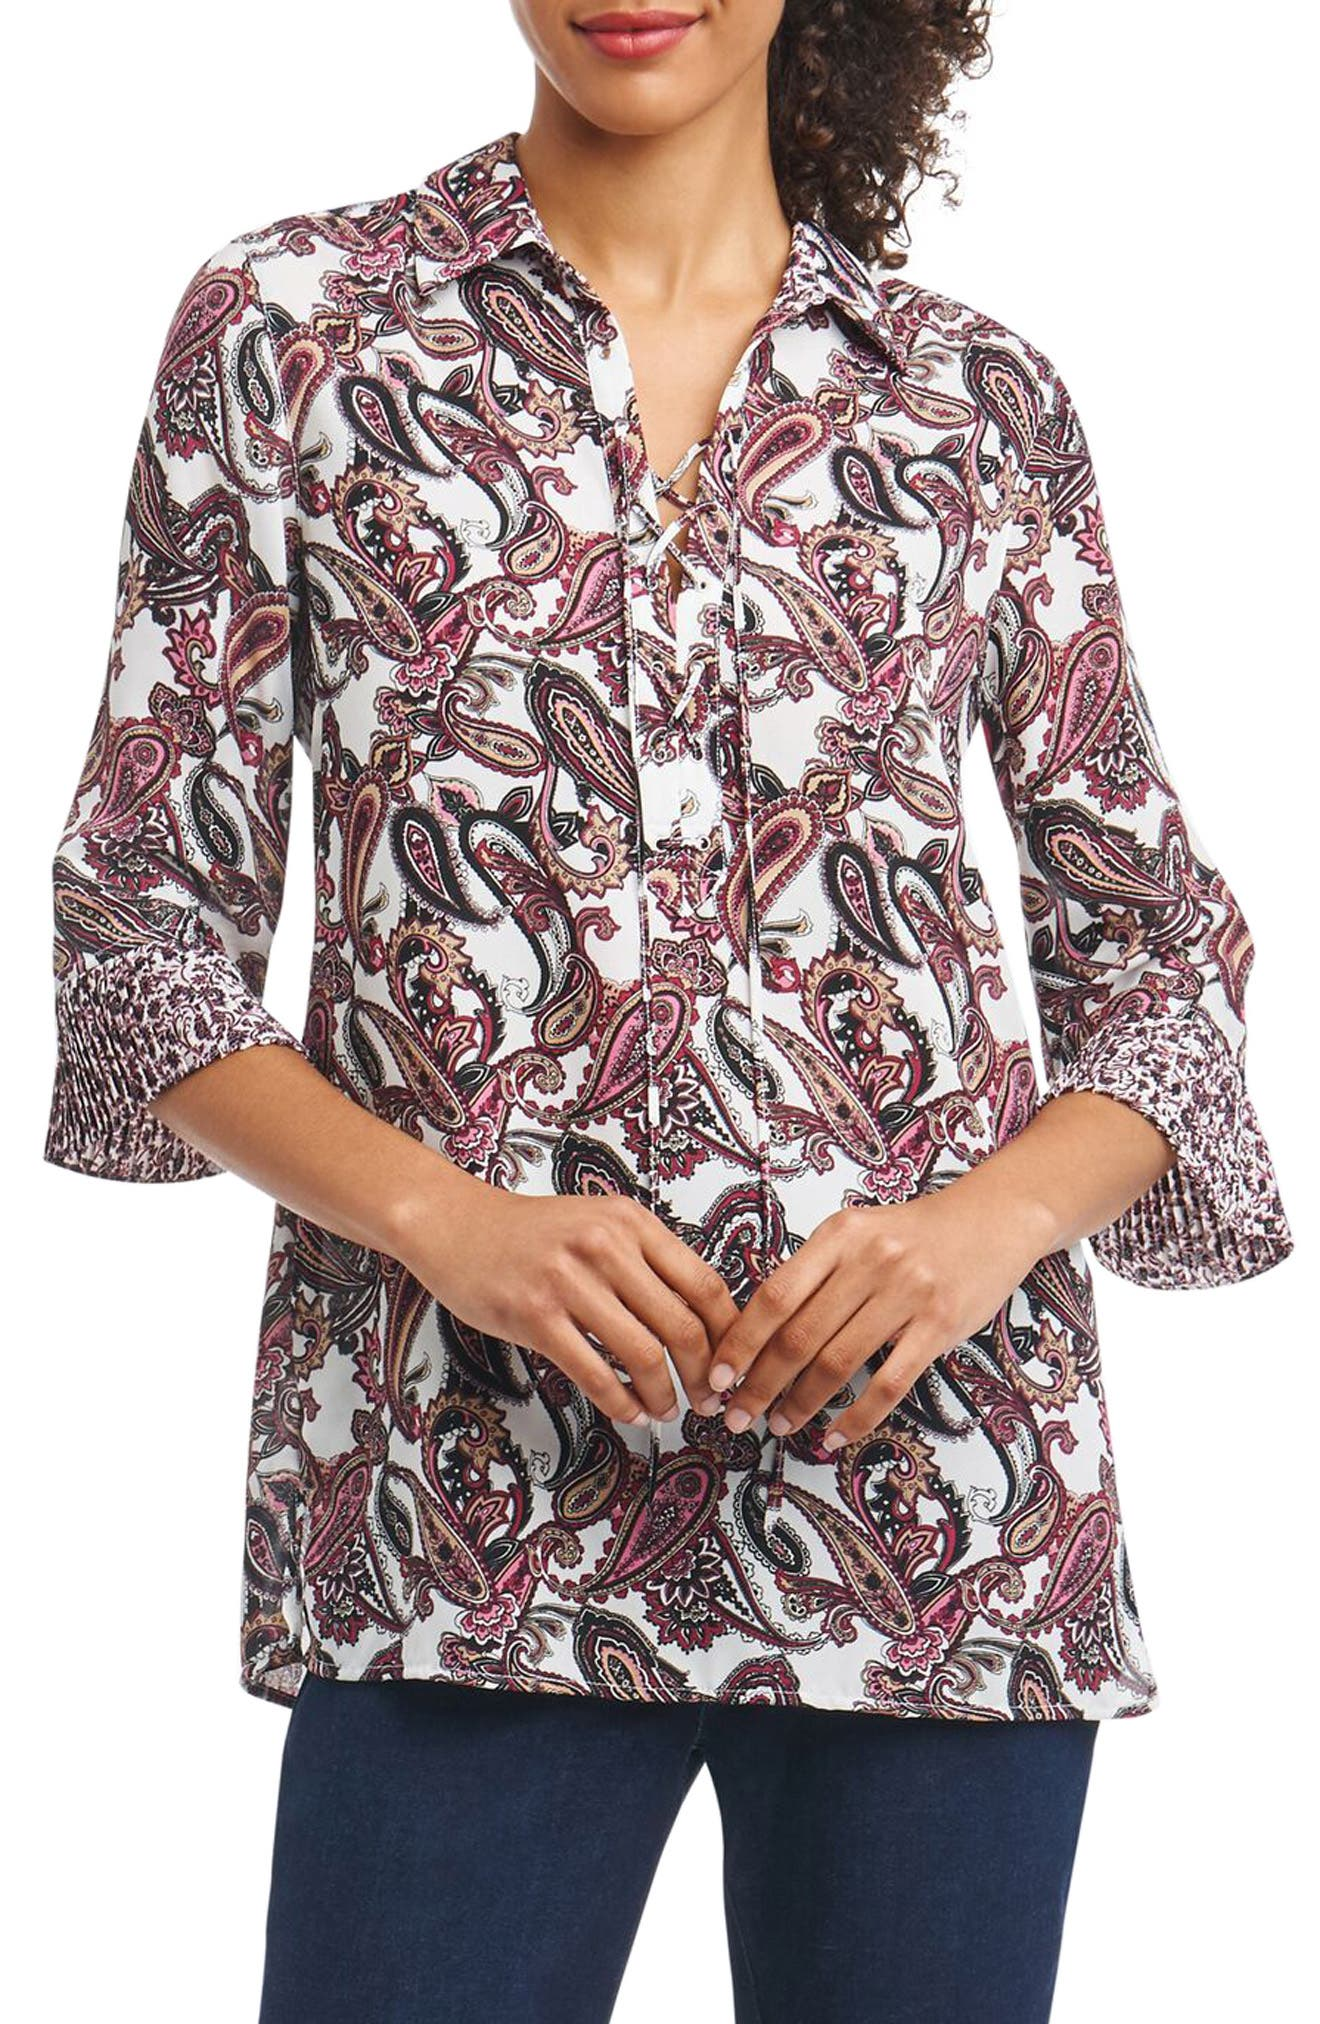 Alternate Image 1 Selected - Foxcroft Felicity Lace-Up Tunic Top (Regular & Petite)